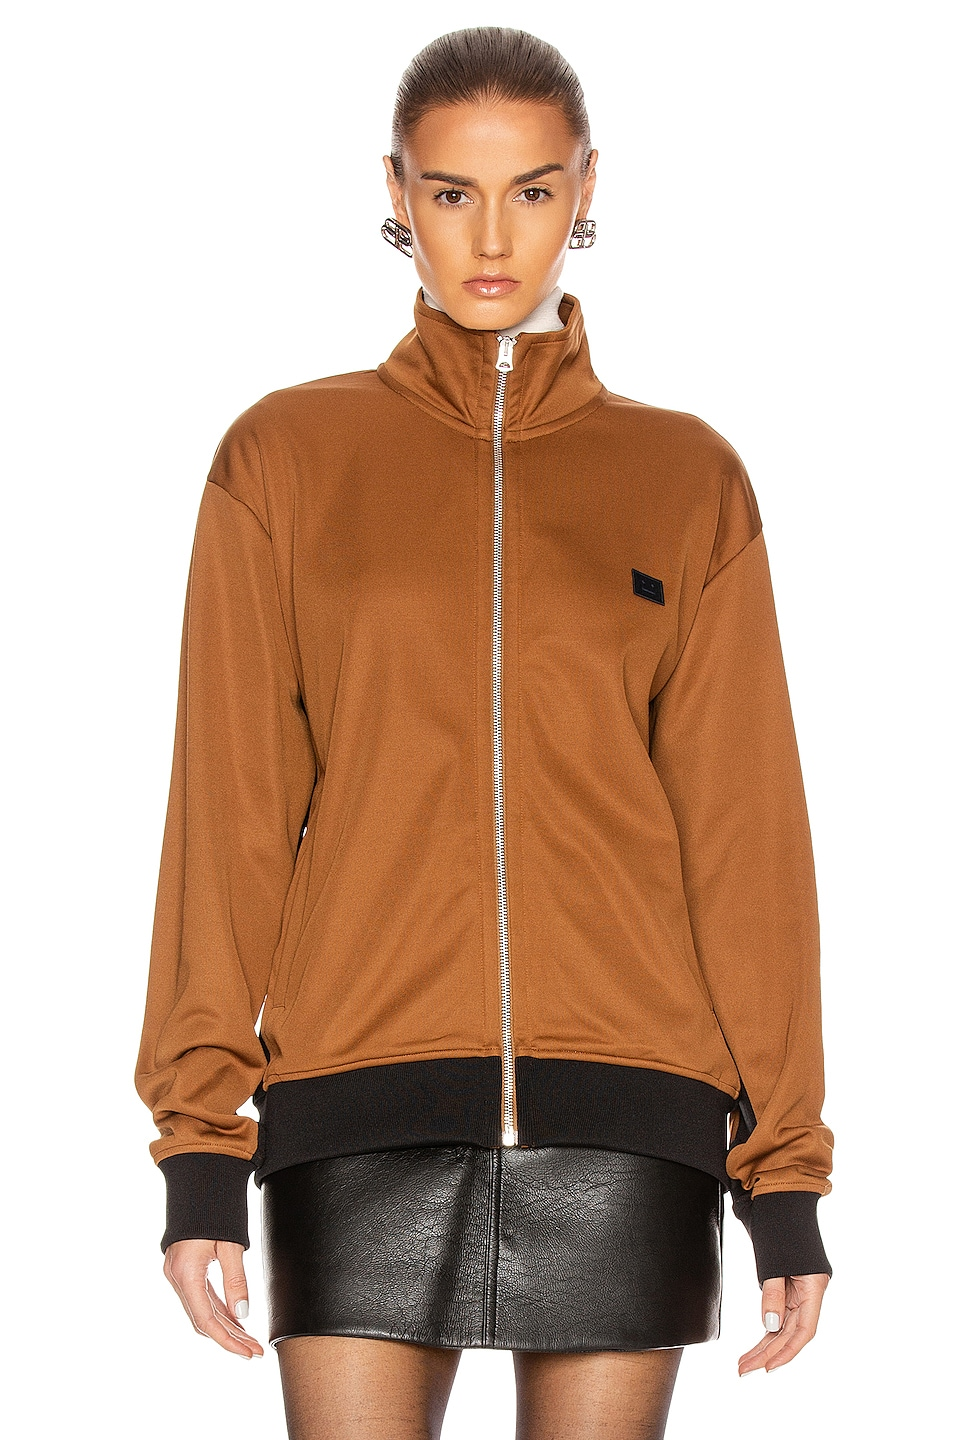 Image 2 of Acne Studios Frescot Face Jacket in Caramel Brown